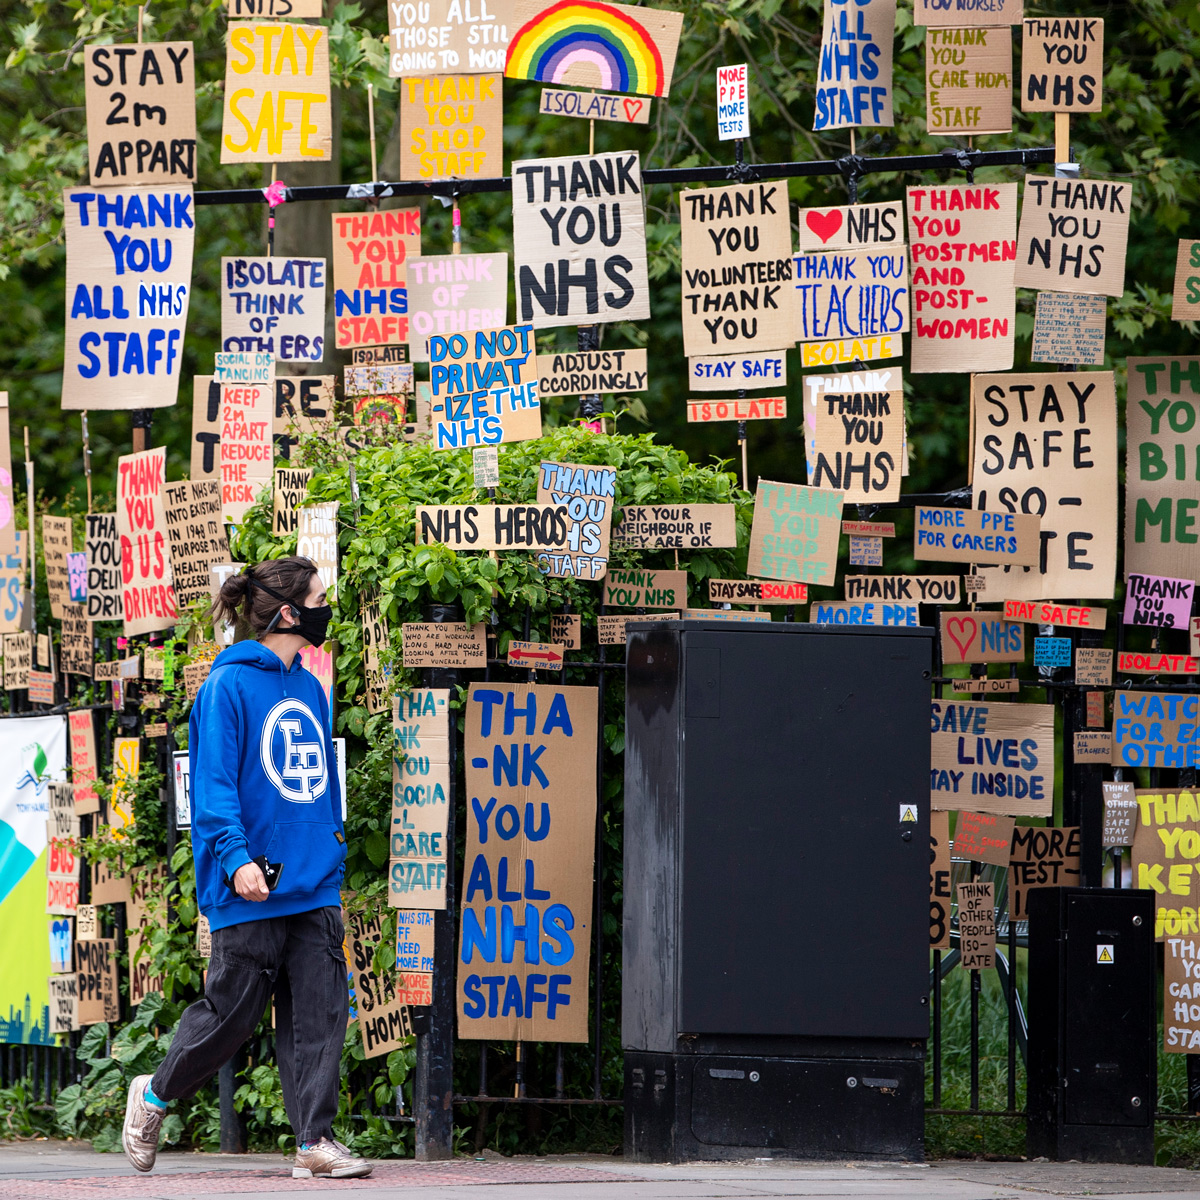 Signs supporting the NHS, London